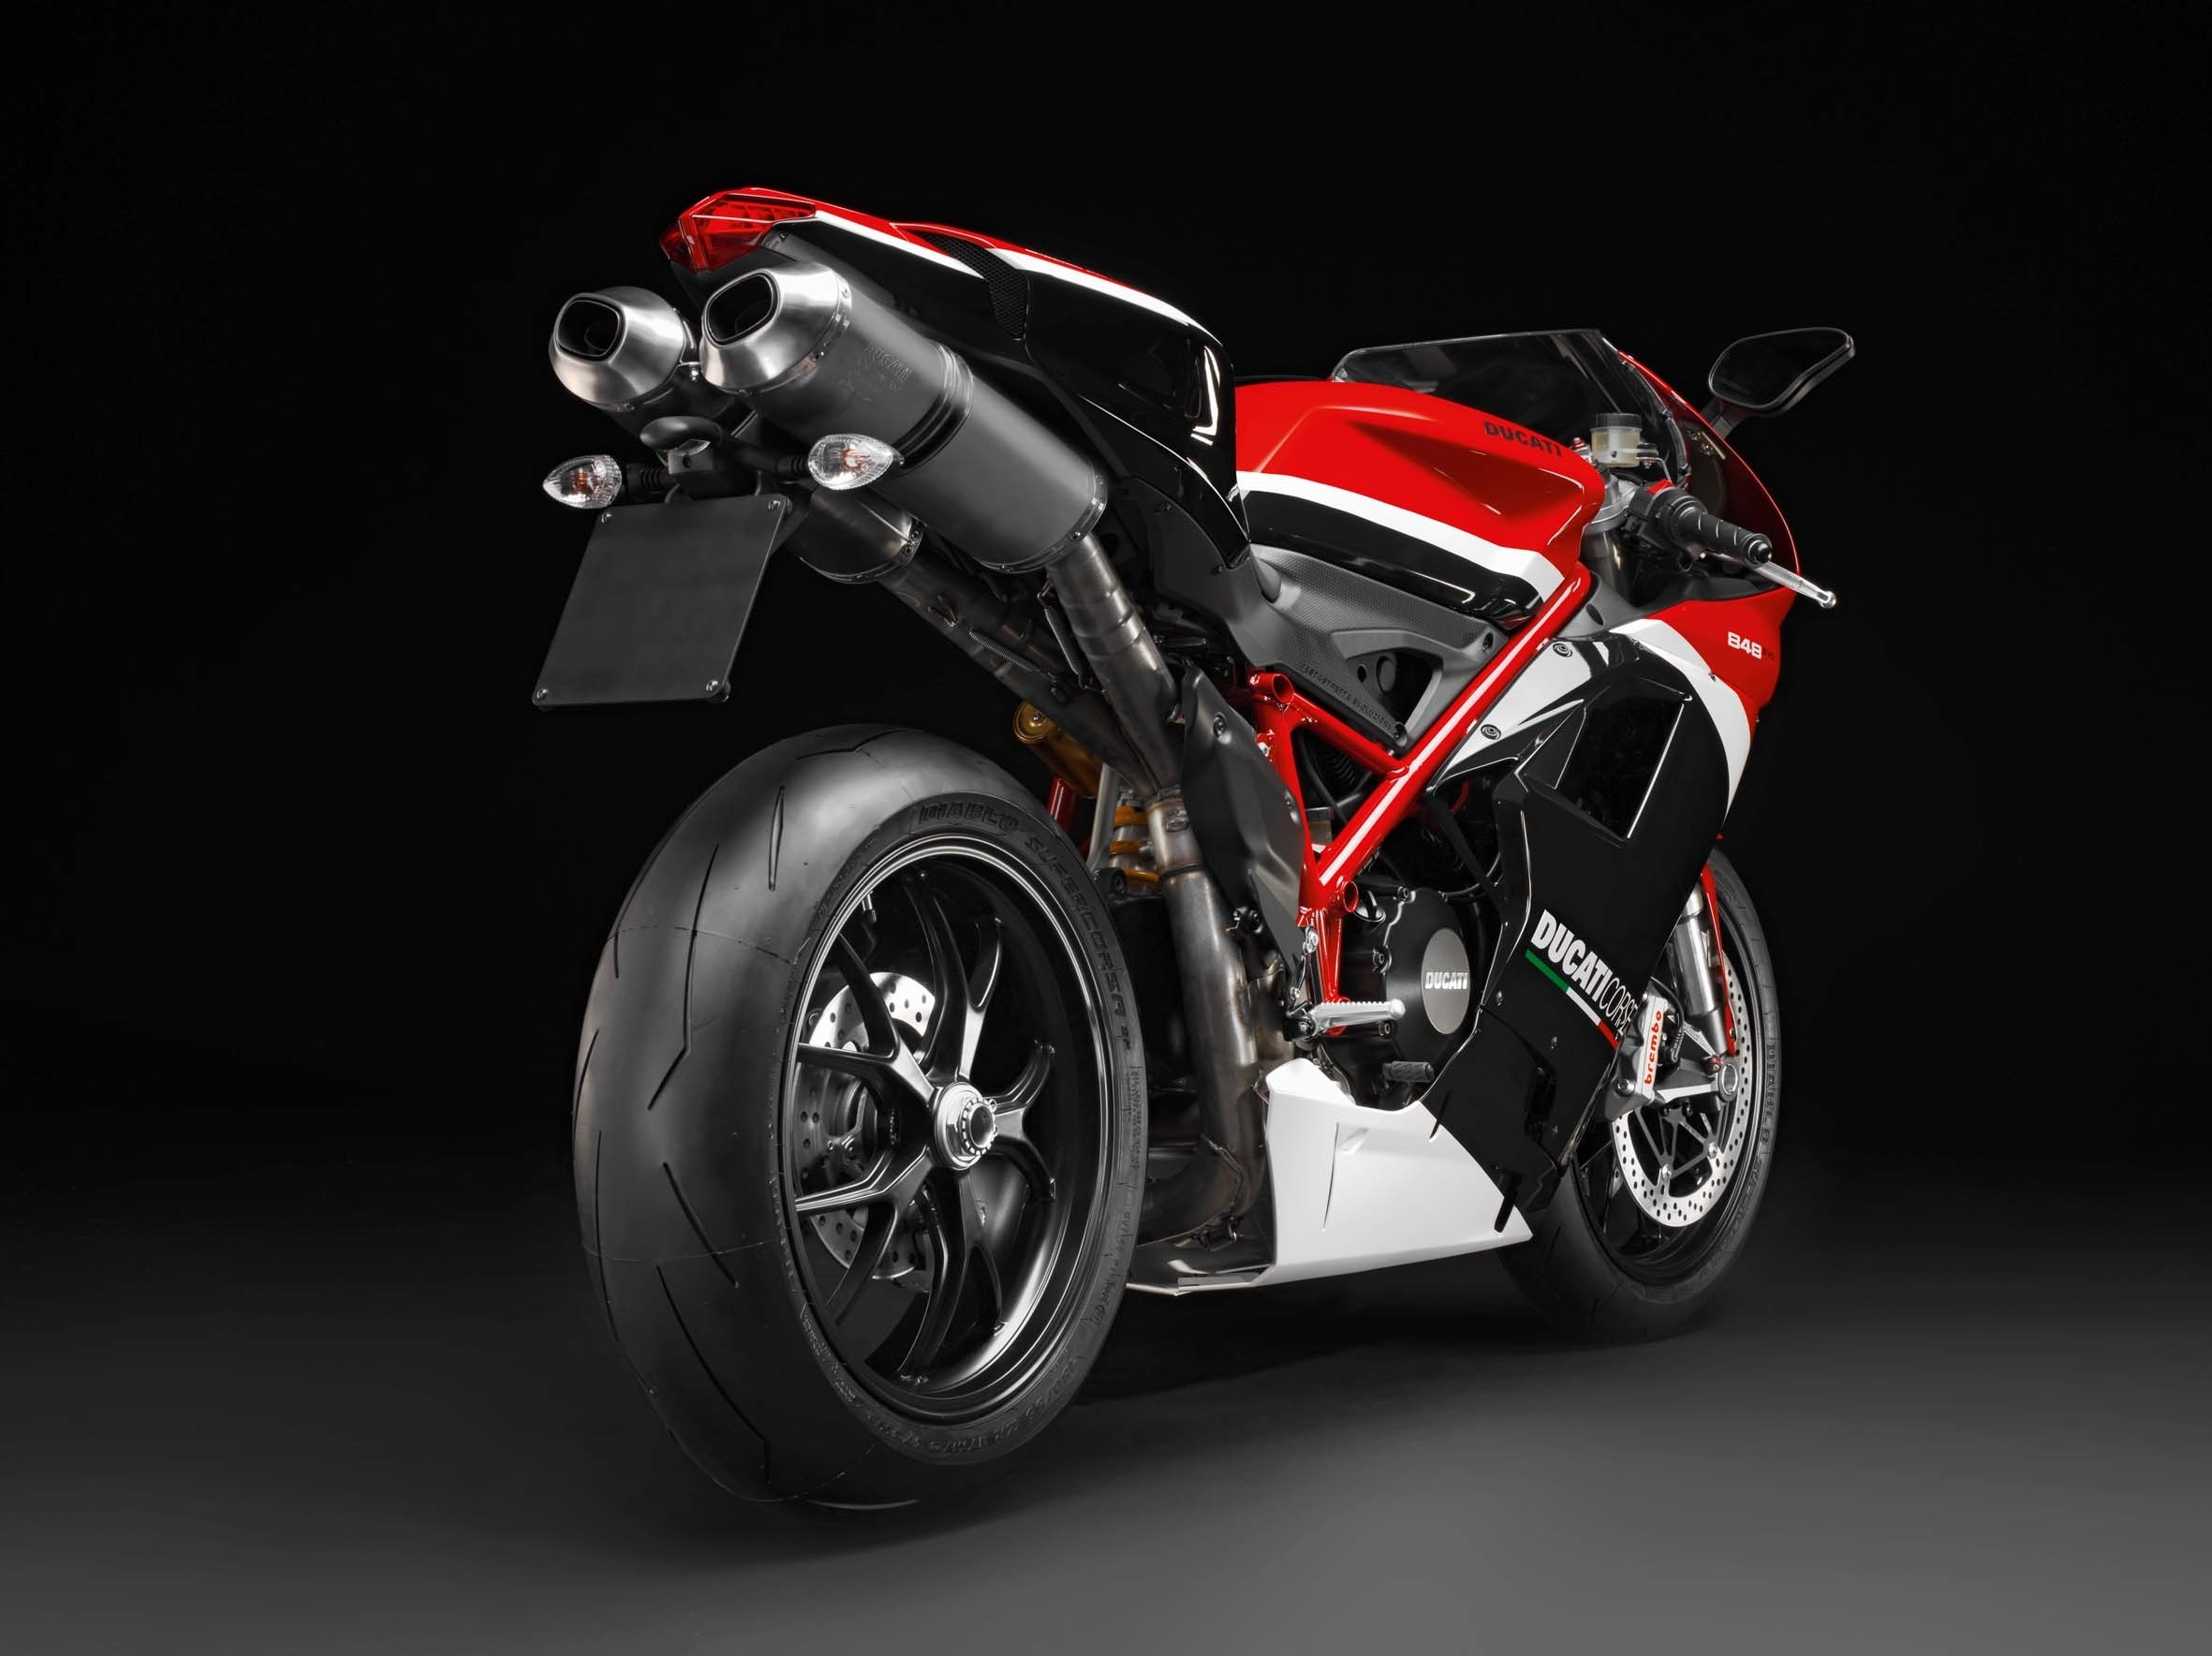 Superbike Hd Wallpaper Full Screen: Ducati Superbike Wallpapers For Iphone